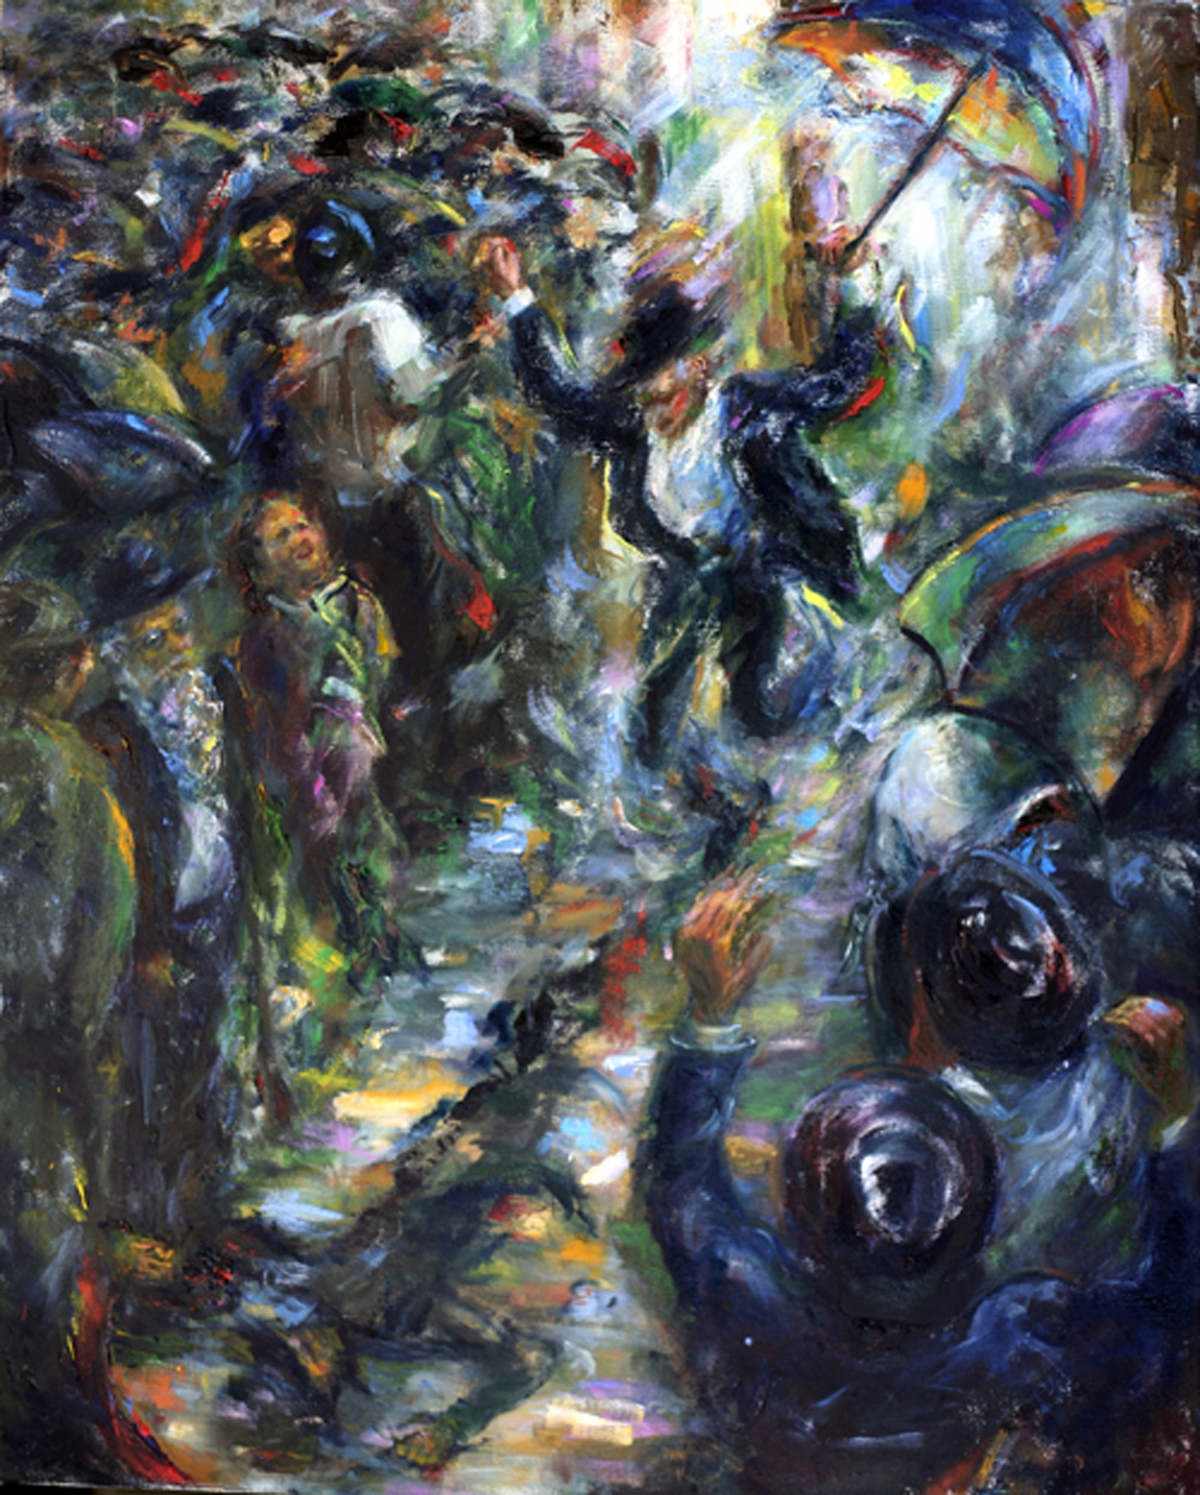 Dancing in the Rain, (30 x 24), Oil on linen by Rosa Katzenelson Courtesy Hadas Gallery